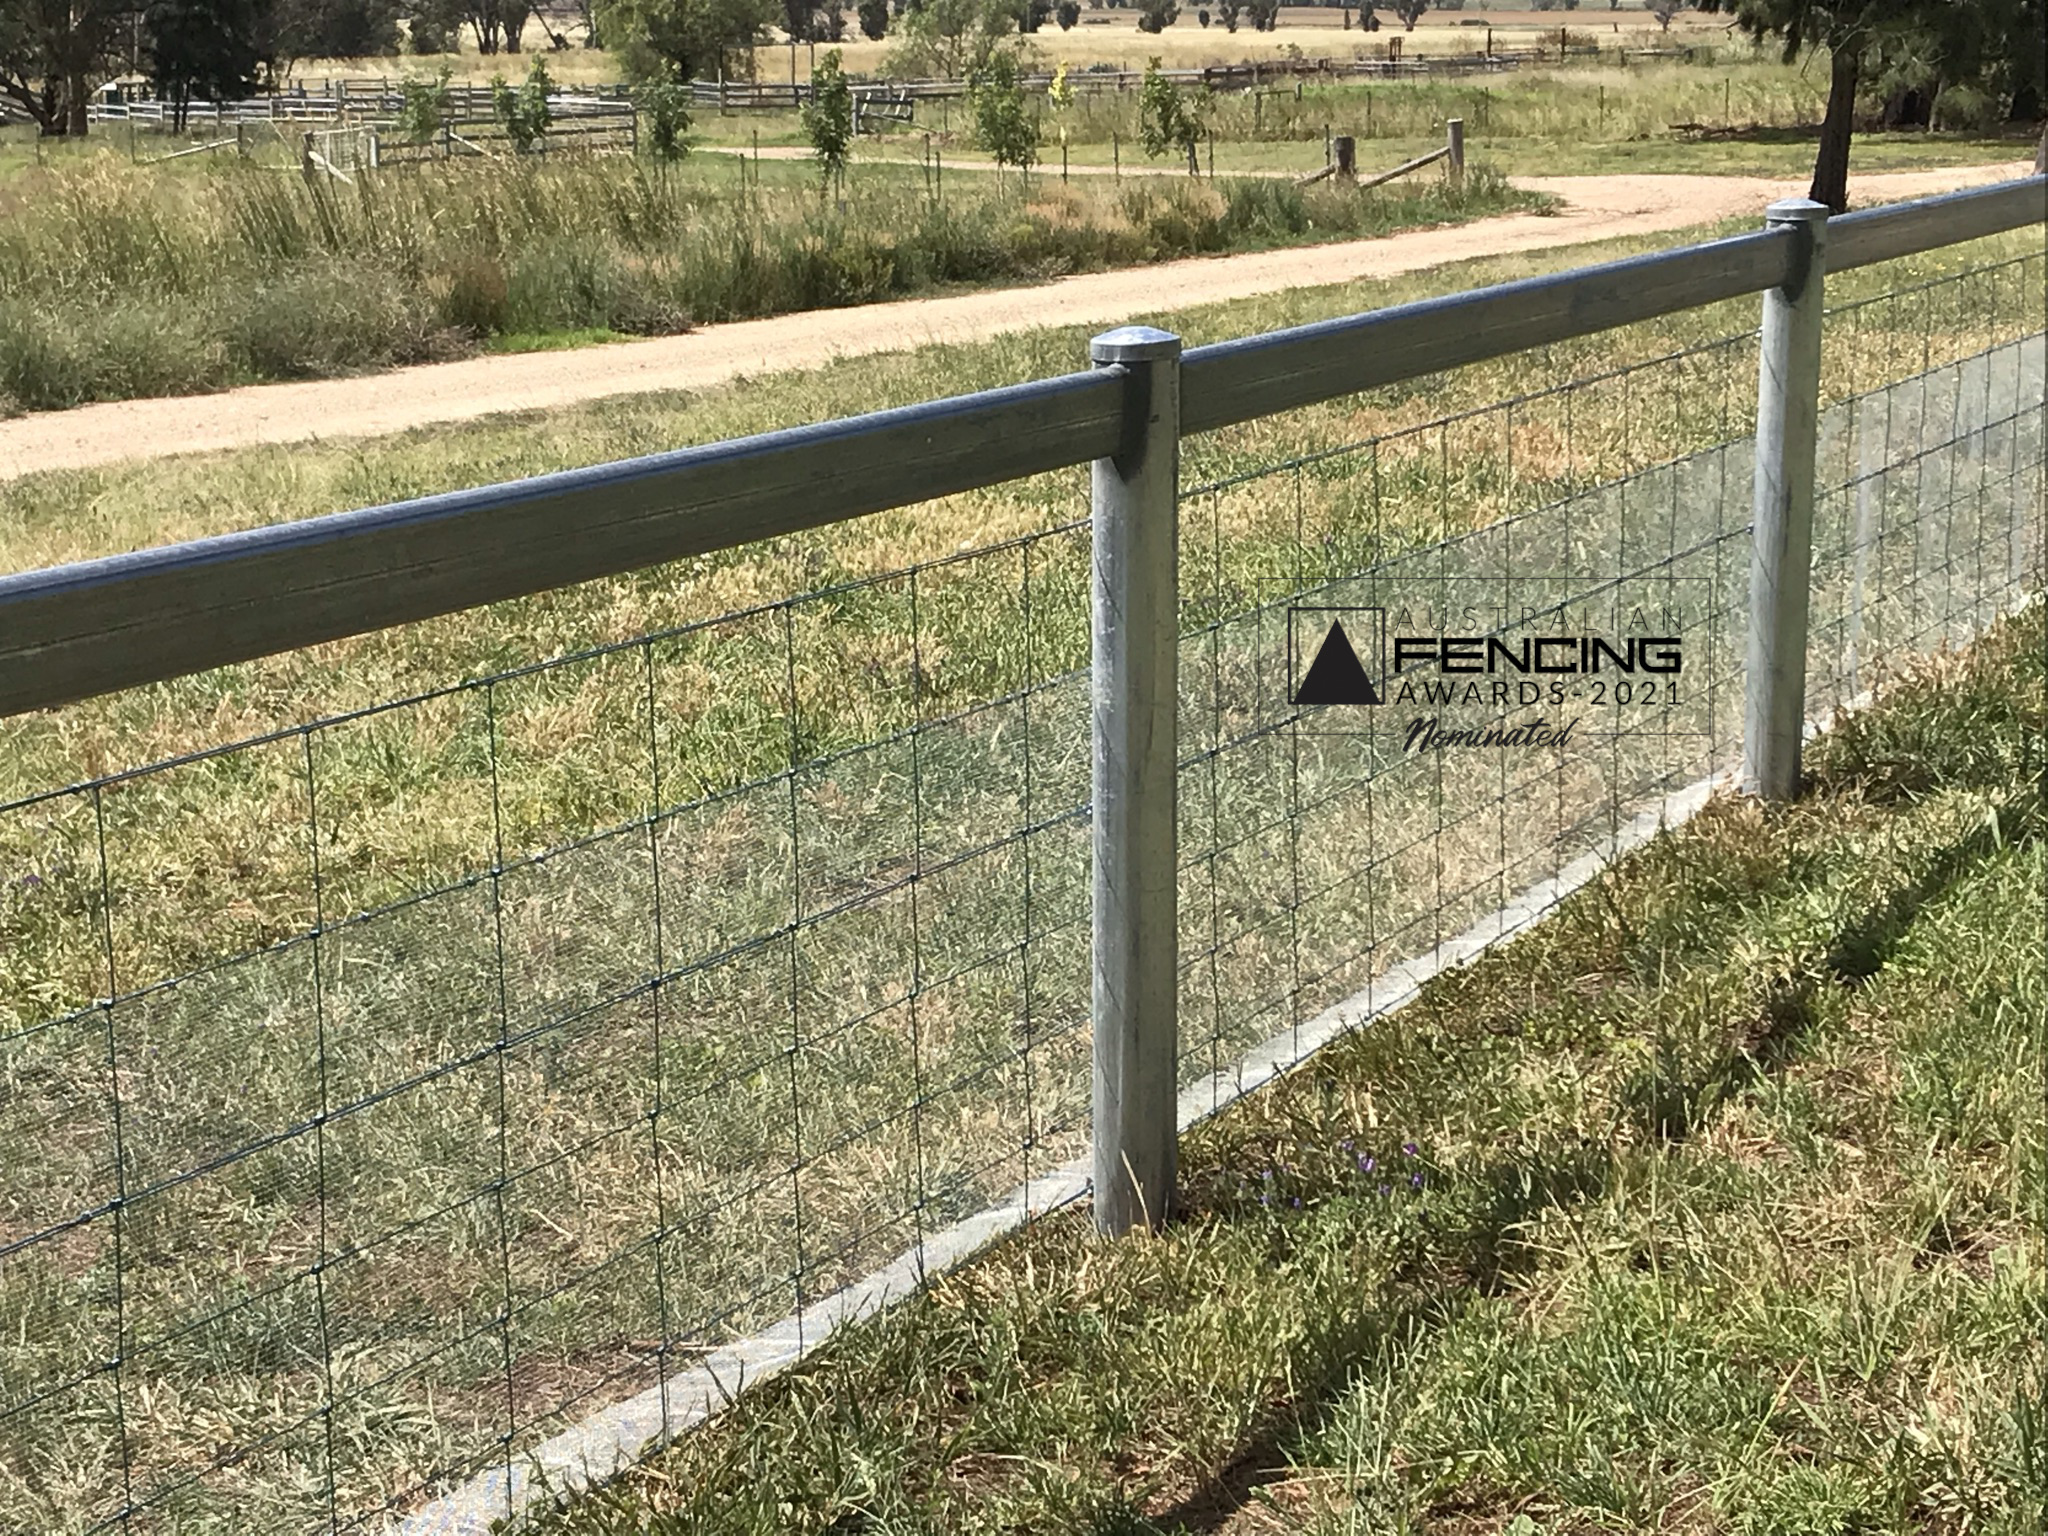 FENCING Awards 2021 nomination - Cairn Hill Project by PH Fencing in Dunedoo